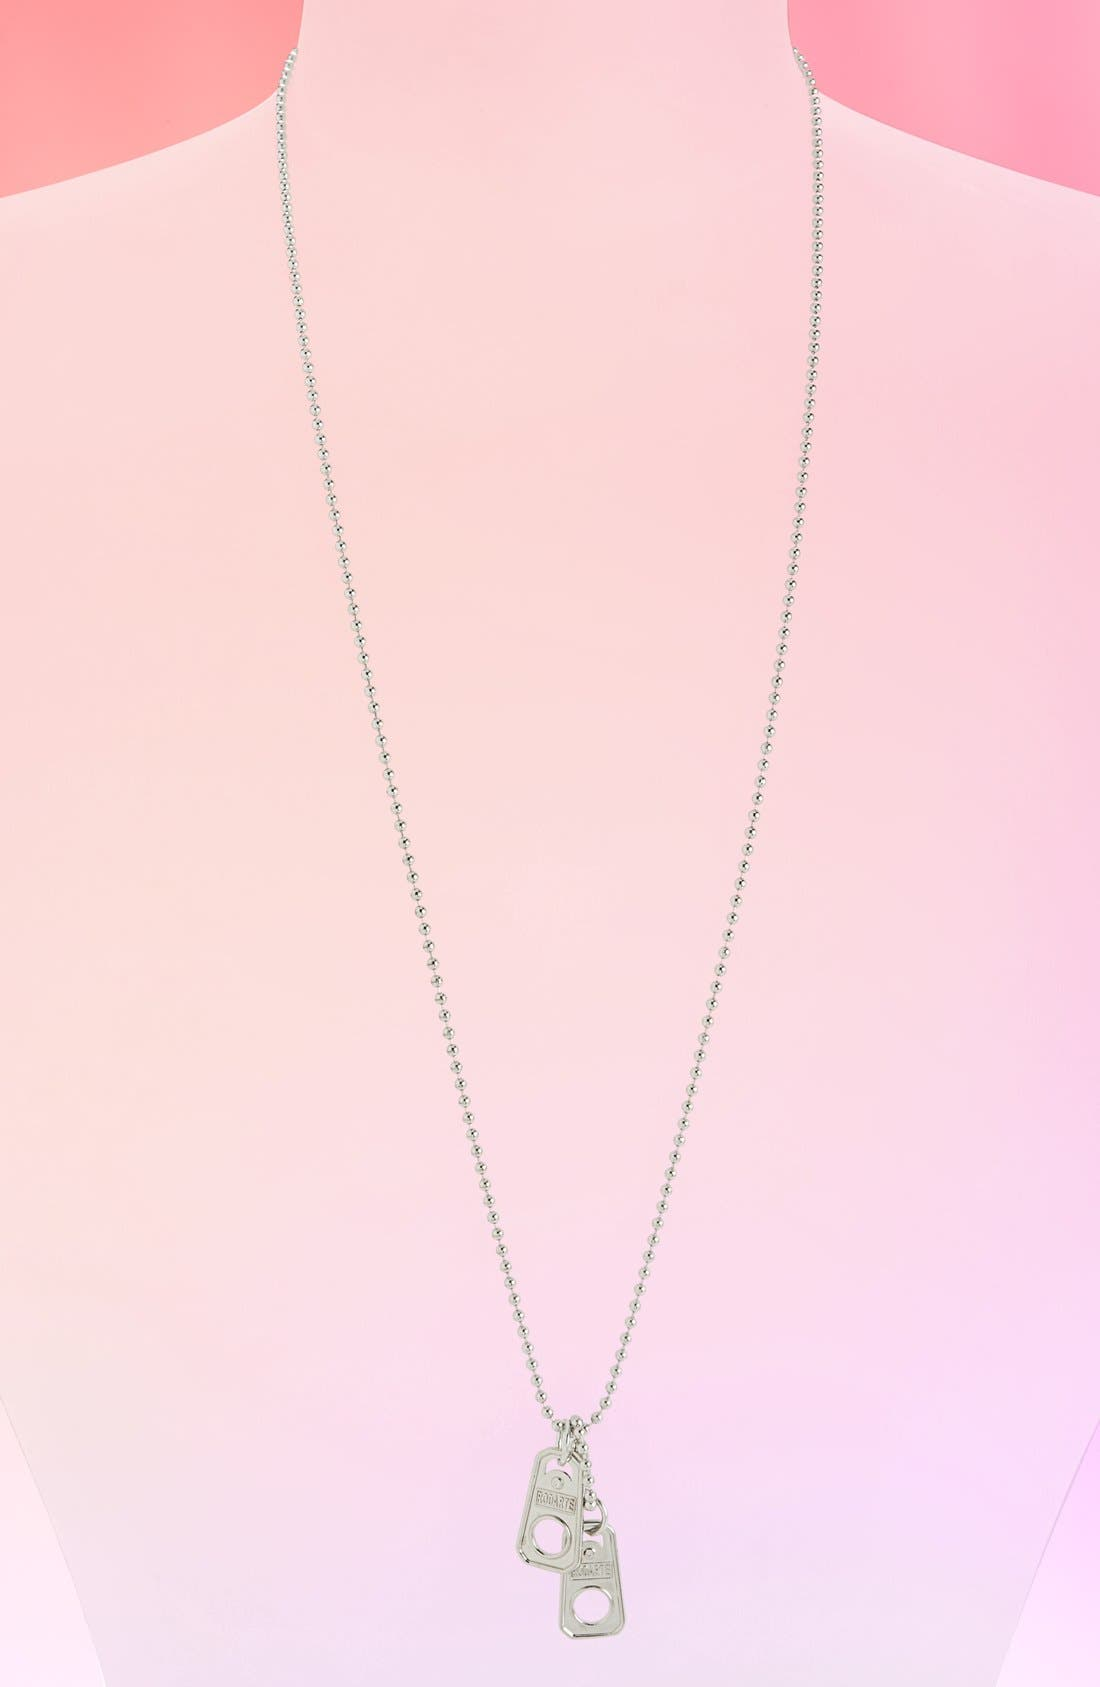 Ball Chain Necklace with Soda Can Pull Tab Pendants, Main, color, 040